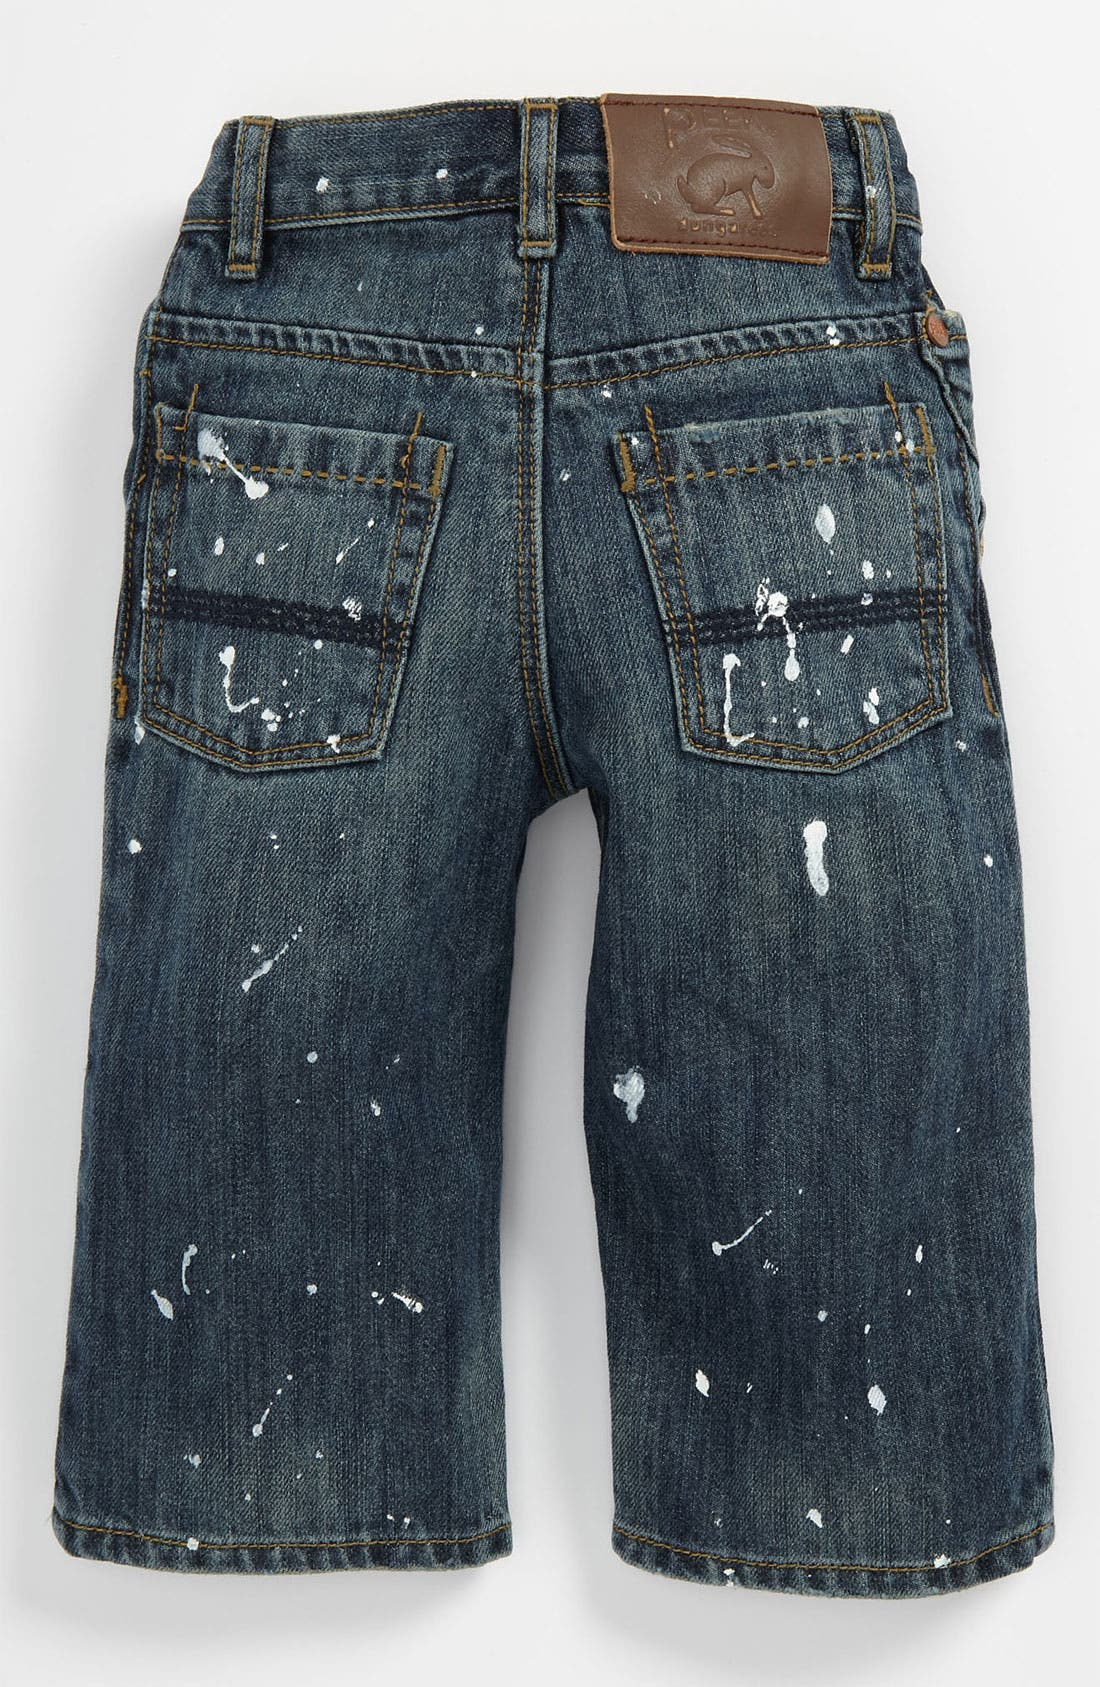 Alternate Image 1 Selected - Peek 'Peanut' Paint Splatter Jeans (Baby)